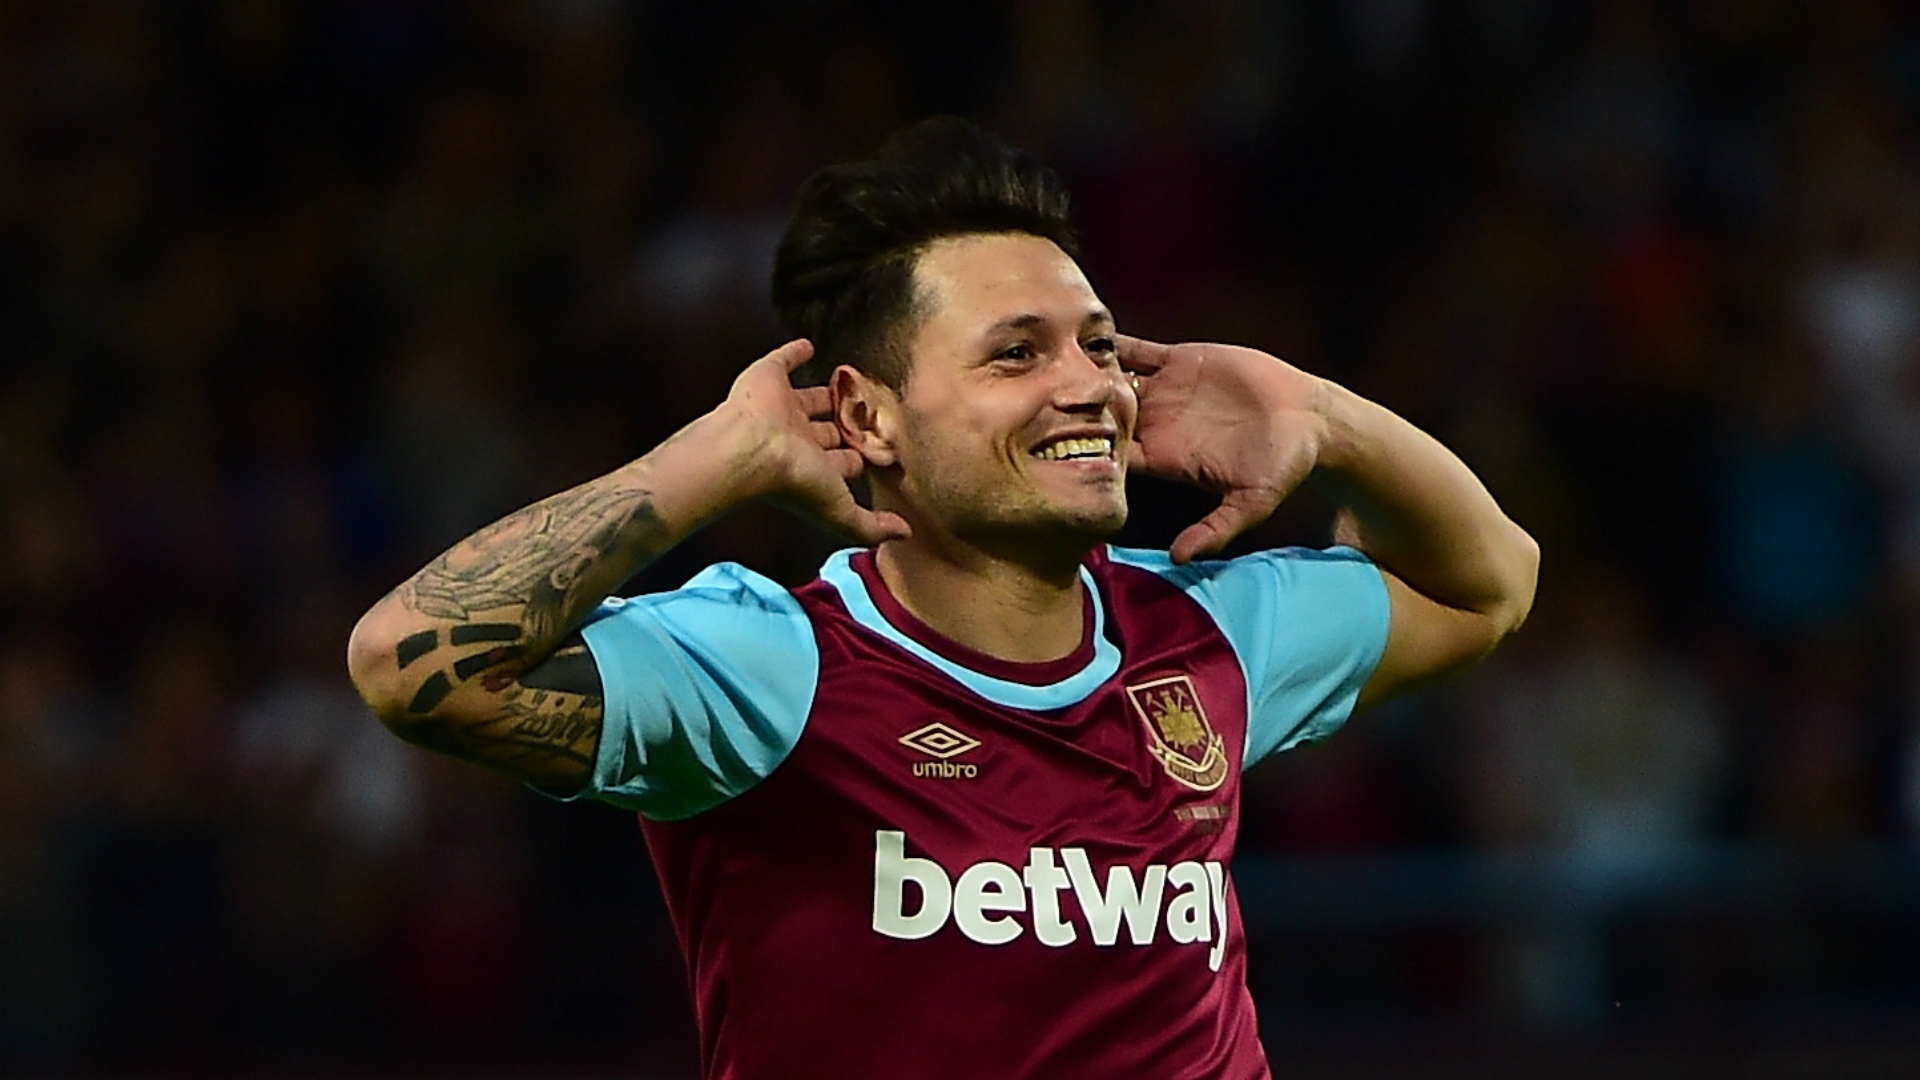 West Ham: Mauro Zarate signs for Hammers from Argentina - BBC Sport